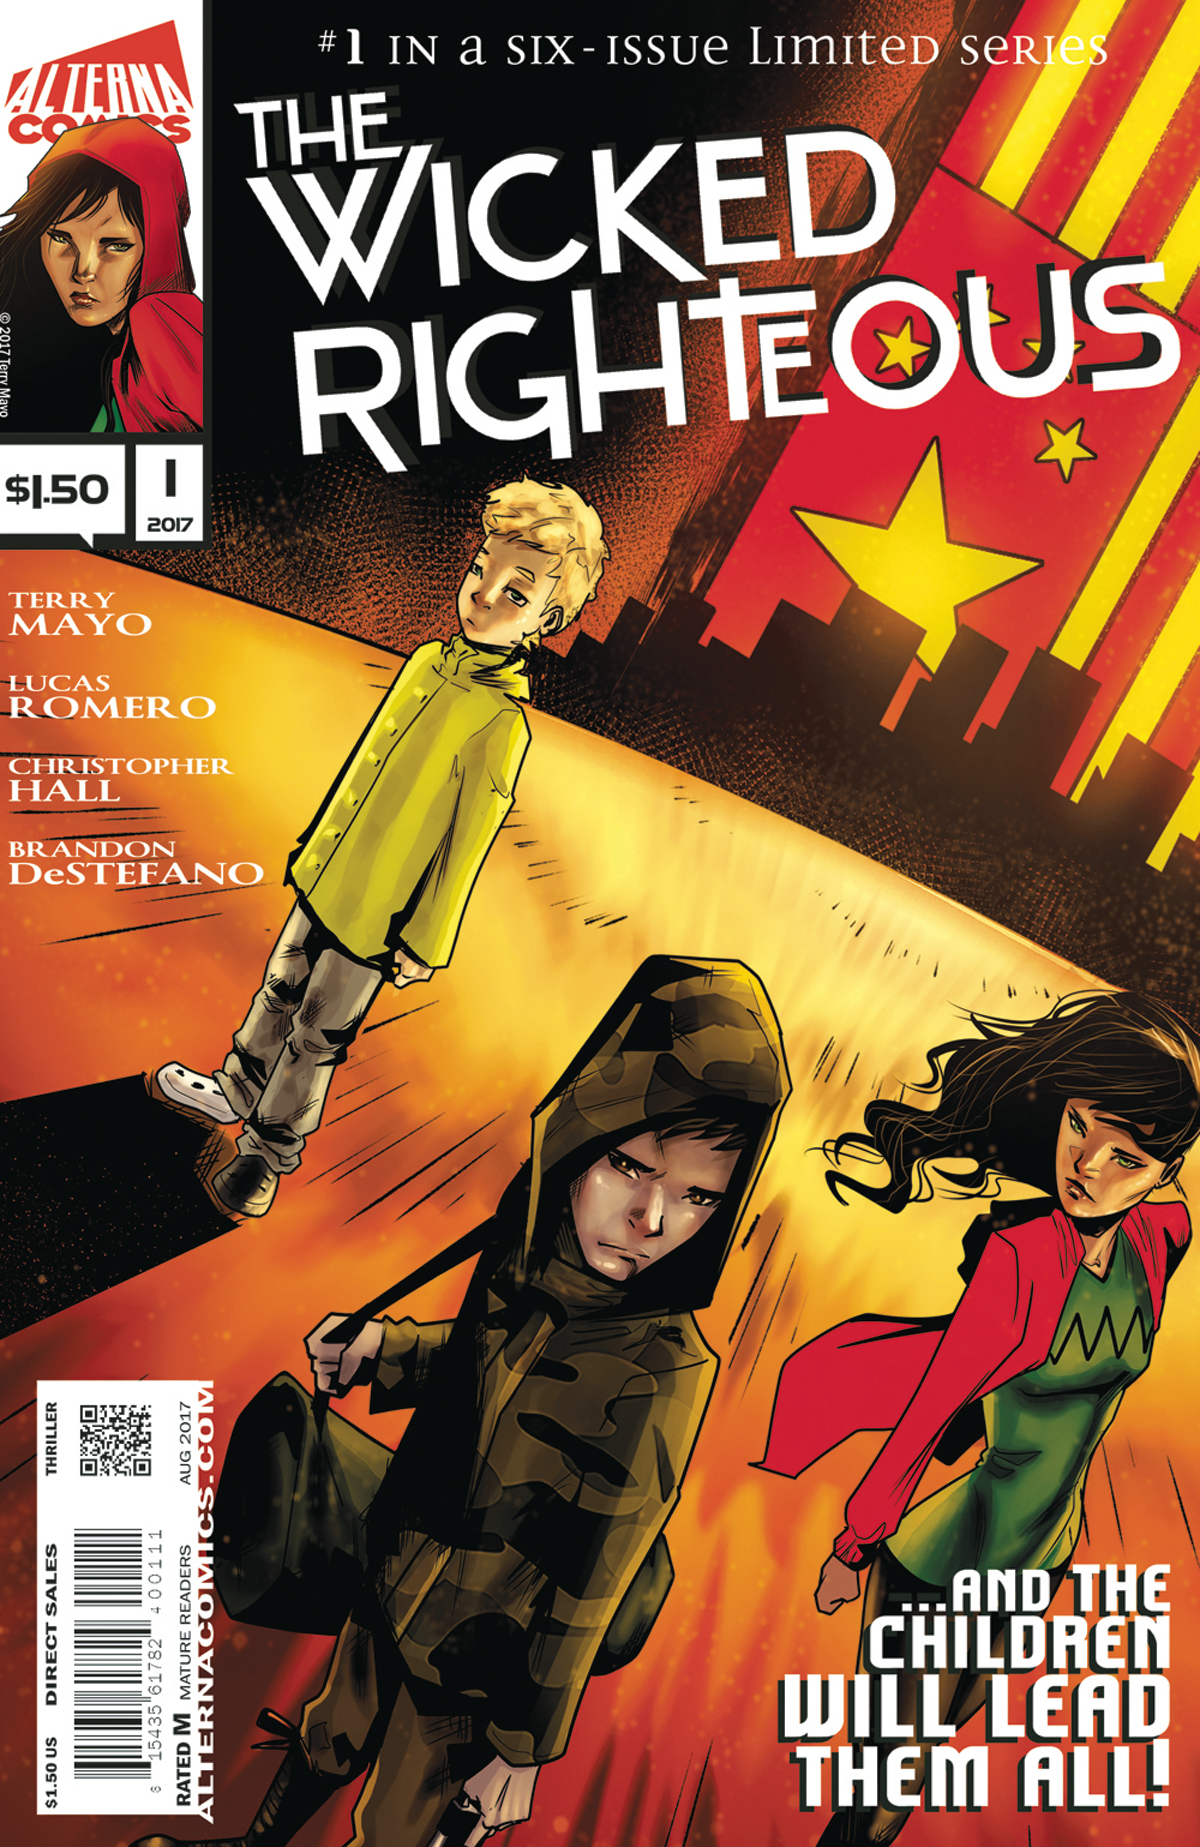 WICKED RIGHTEOUS #1 (OF 6)